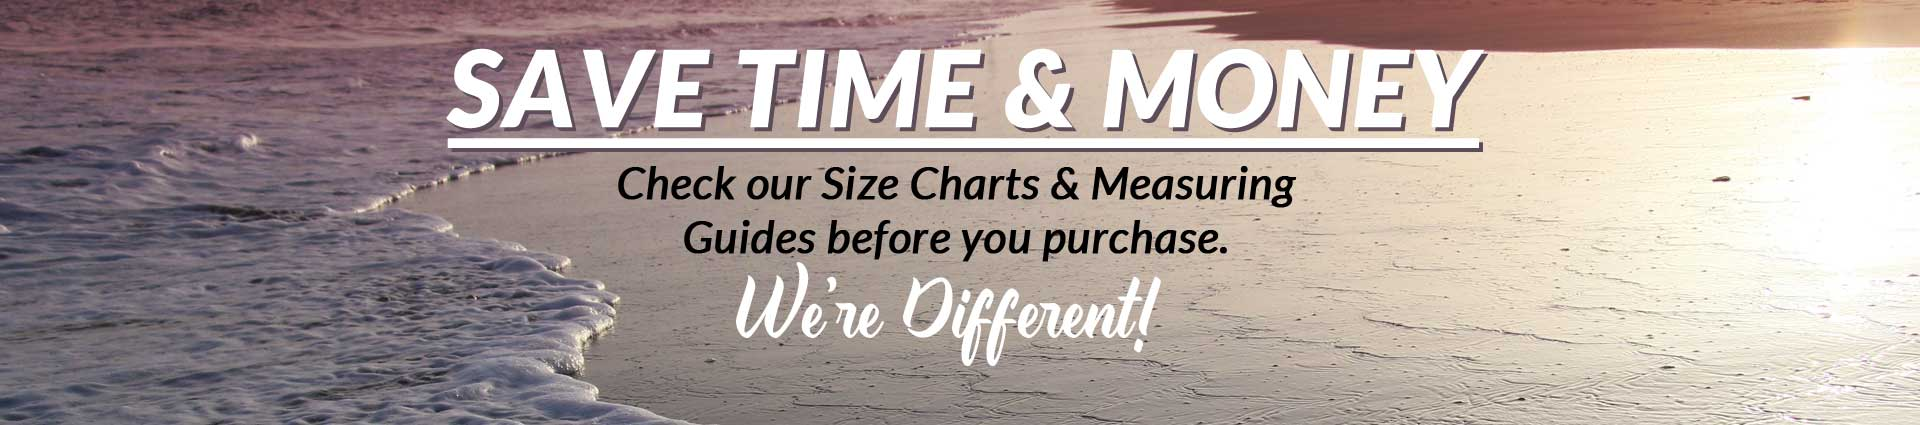 We're Different! Check size charts to compare your shirt